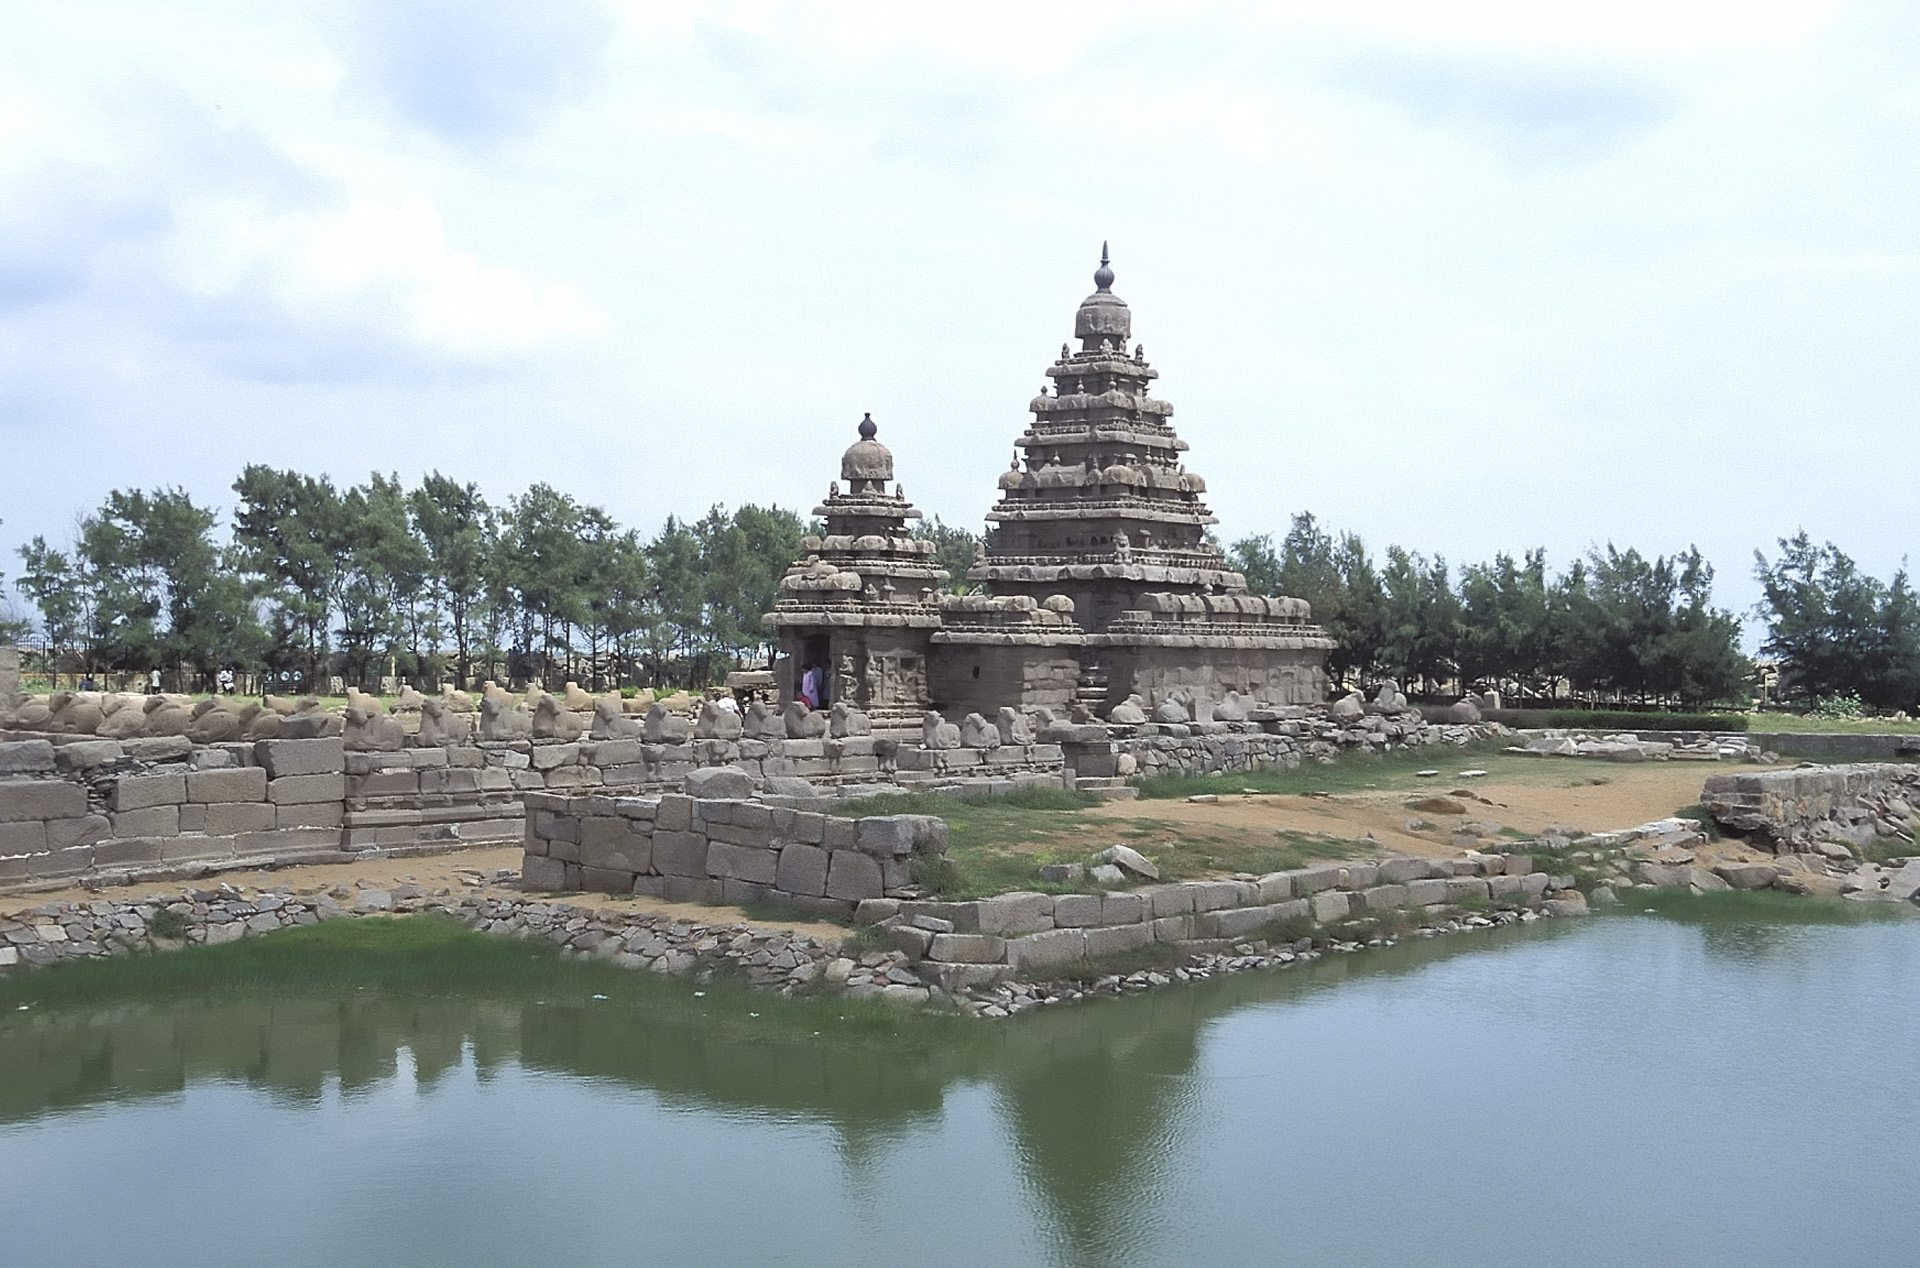 Shore Temple, Mahabalipuram, Tamil Nadu, India